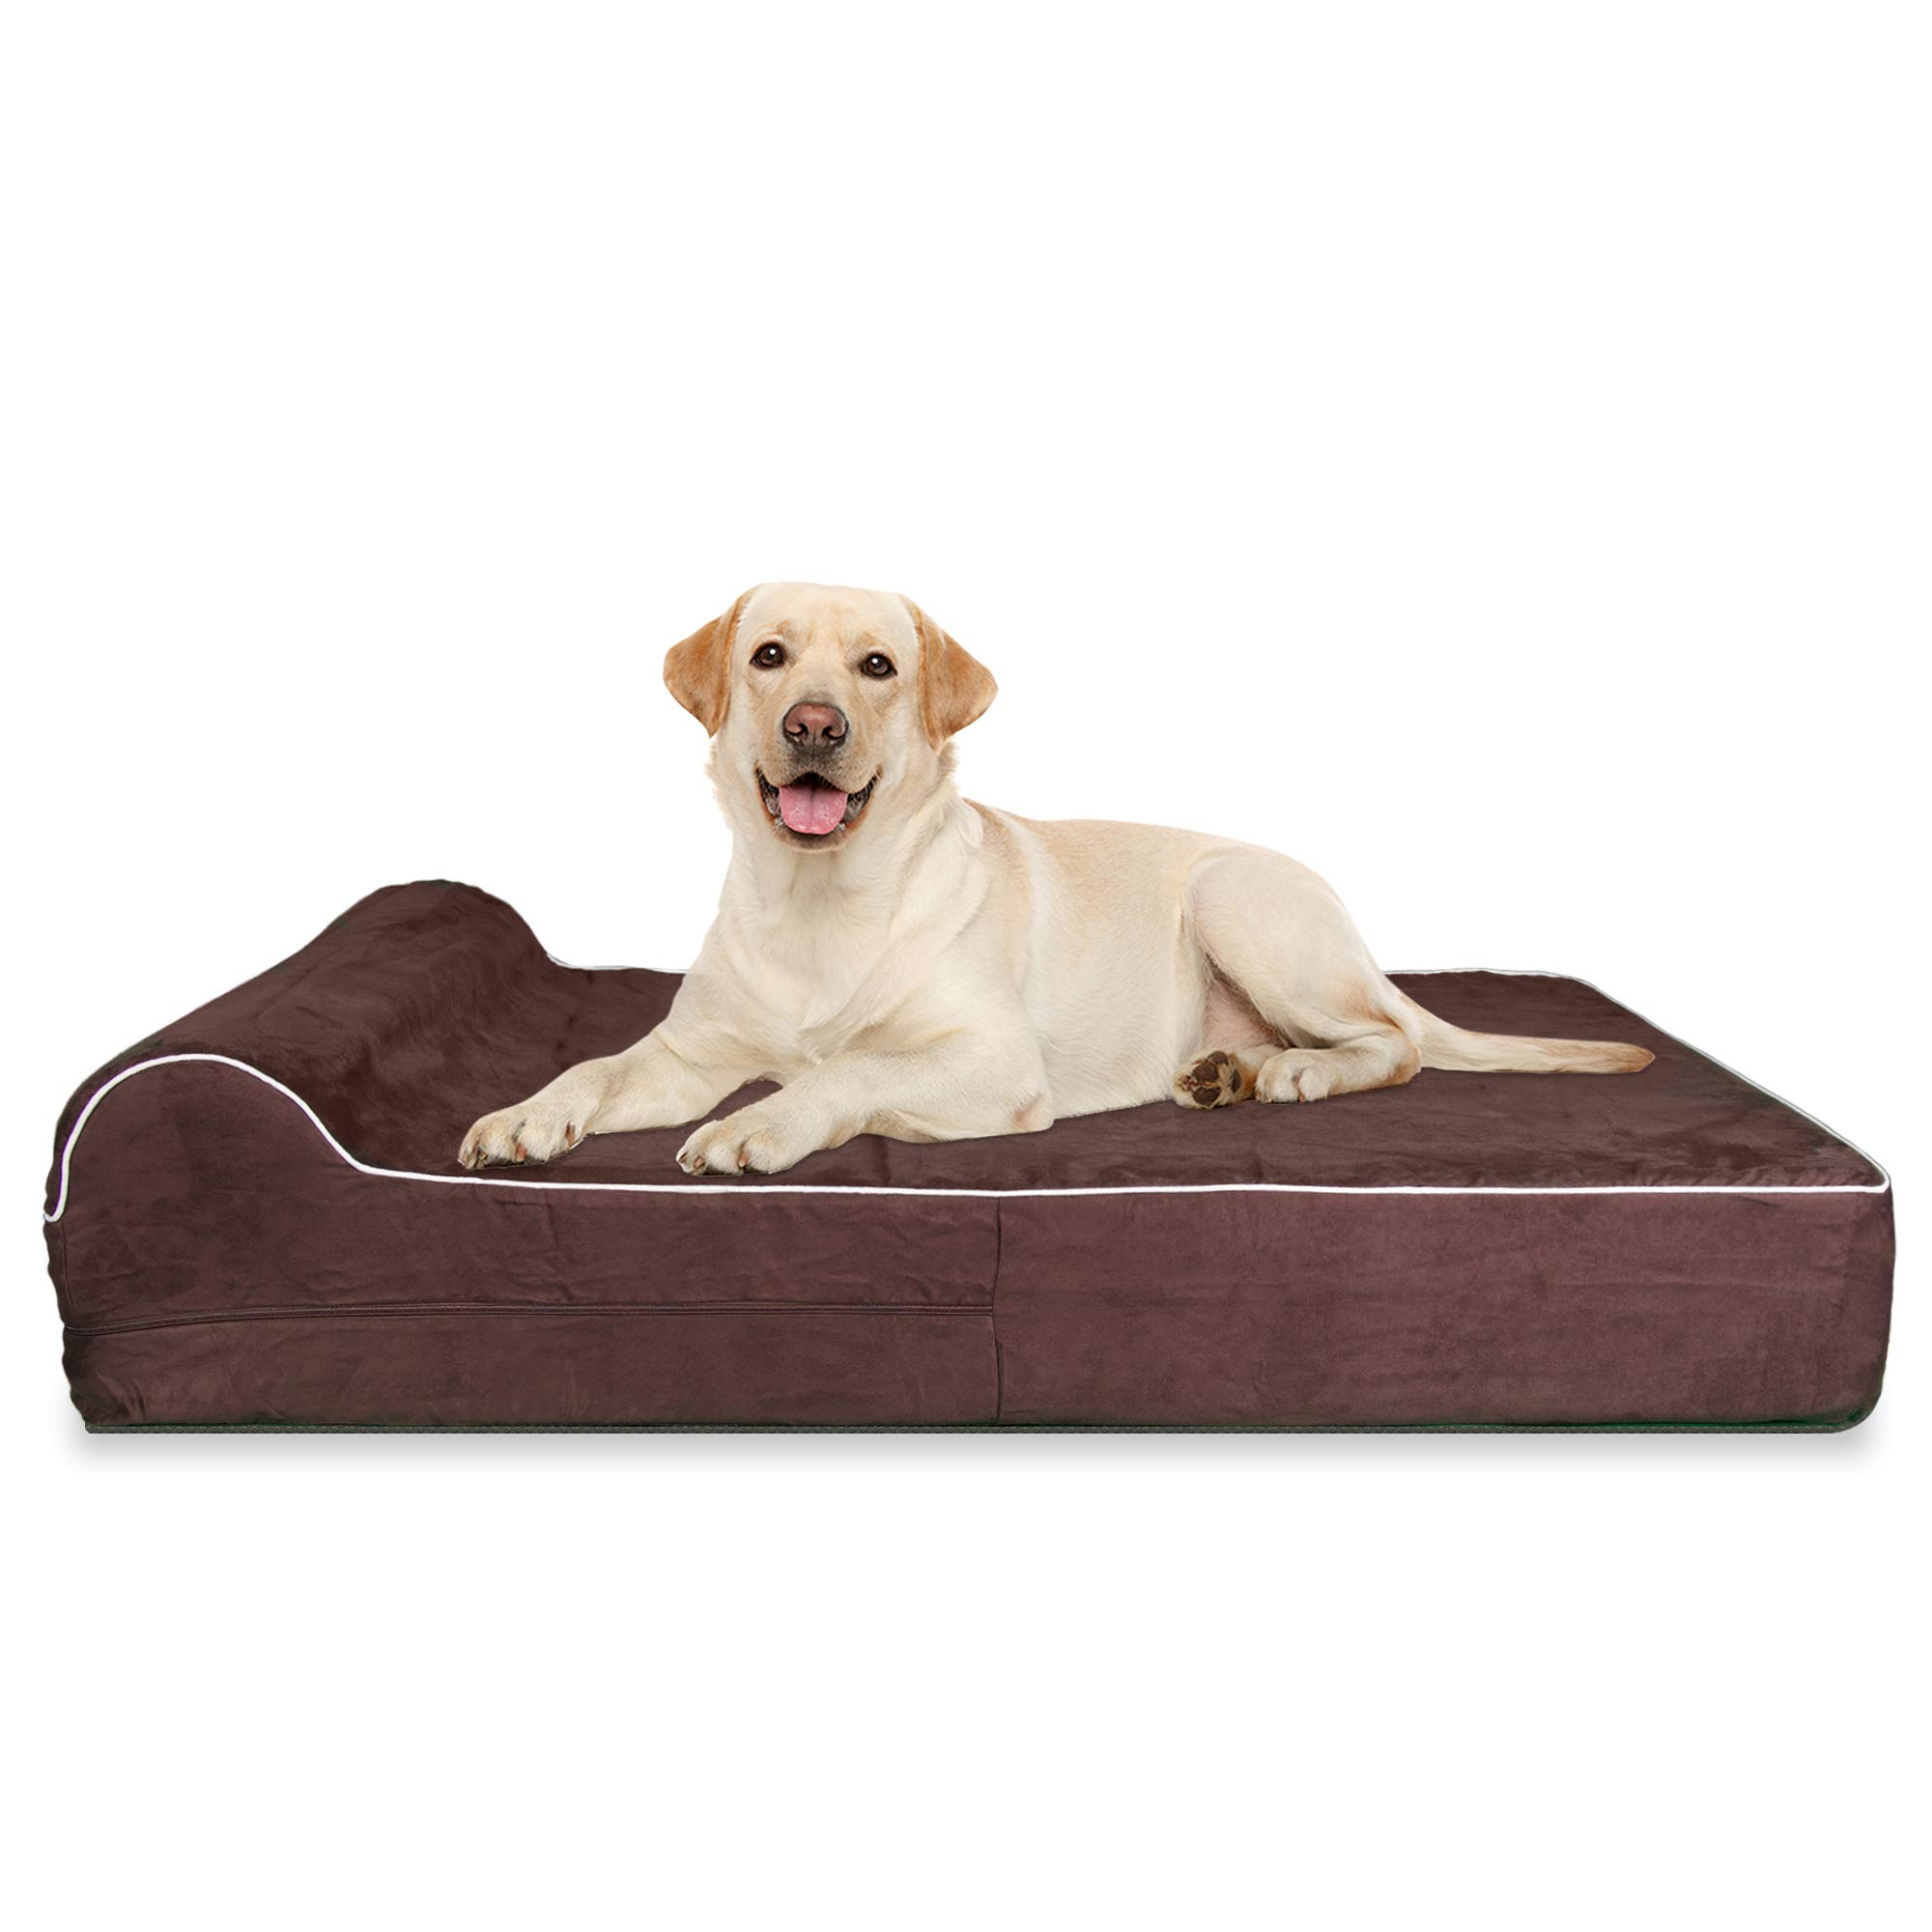 Jumbo XL Orthopedic 7-inch Thick High Grade Memory Foam Dog Bed With Pillow and Easy to Wash Removable Cover with Anti-Slip Bottom - Free Waterproof Liner Included